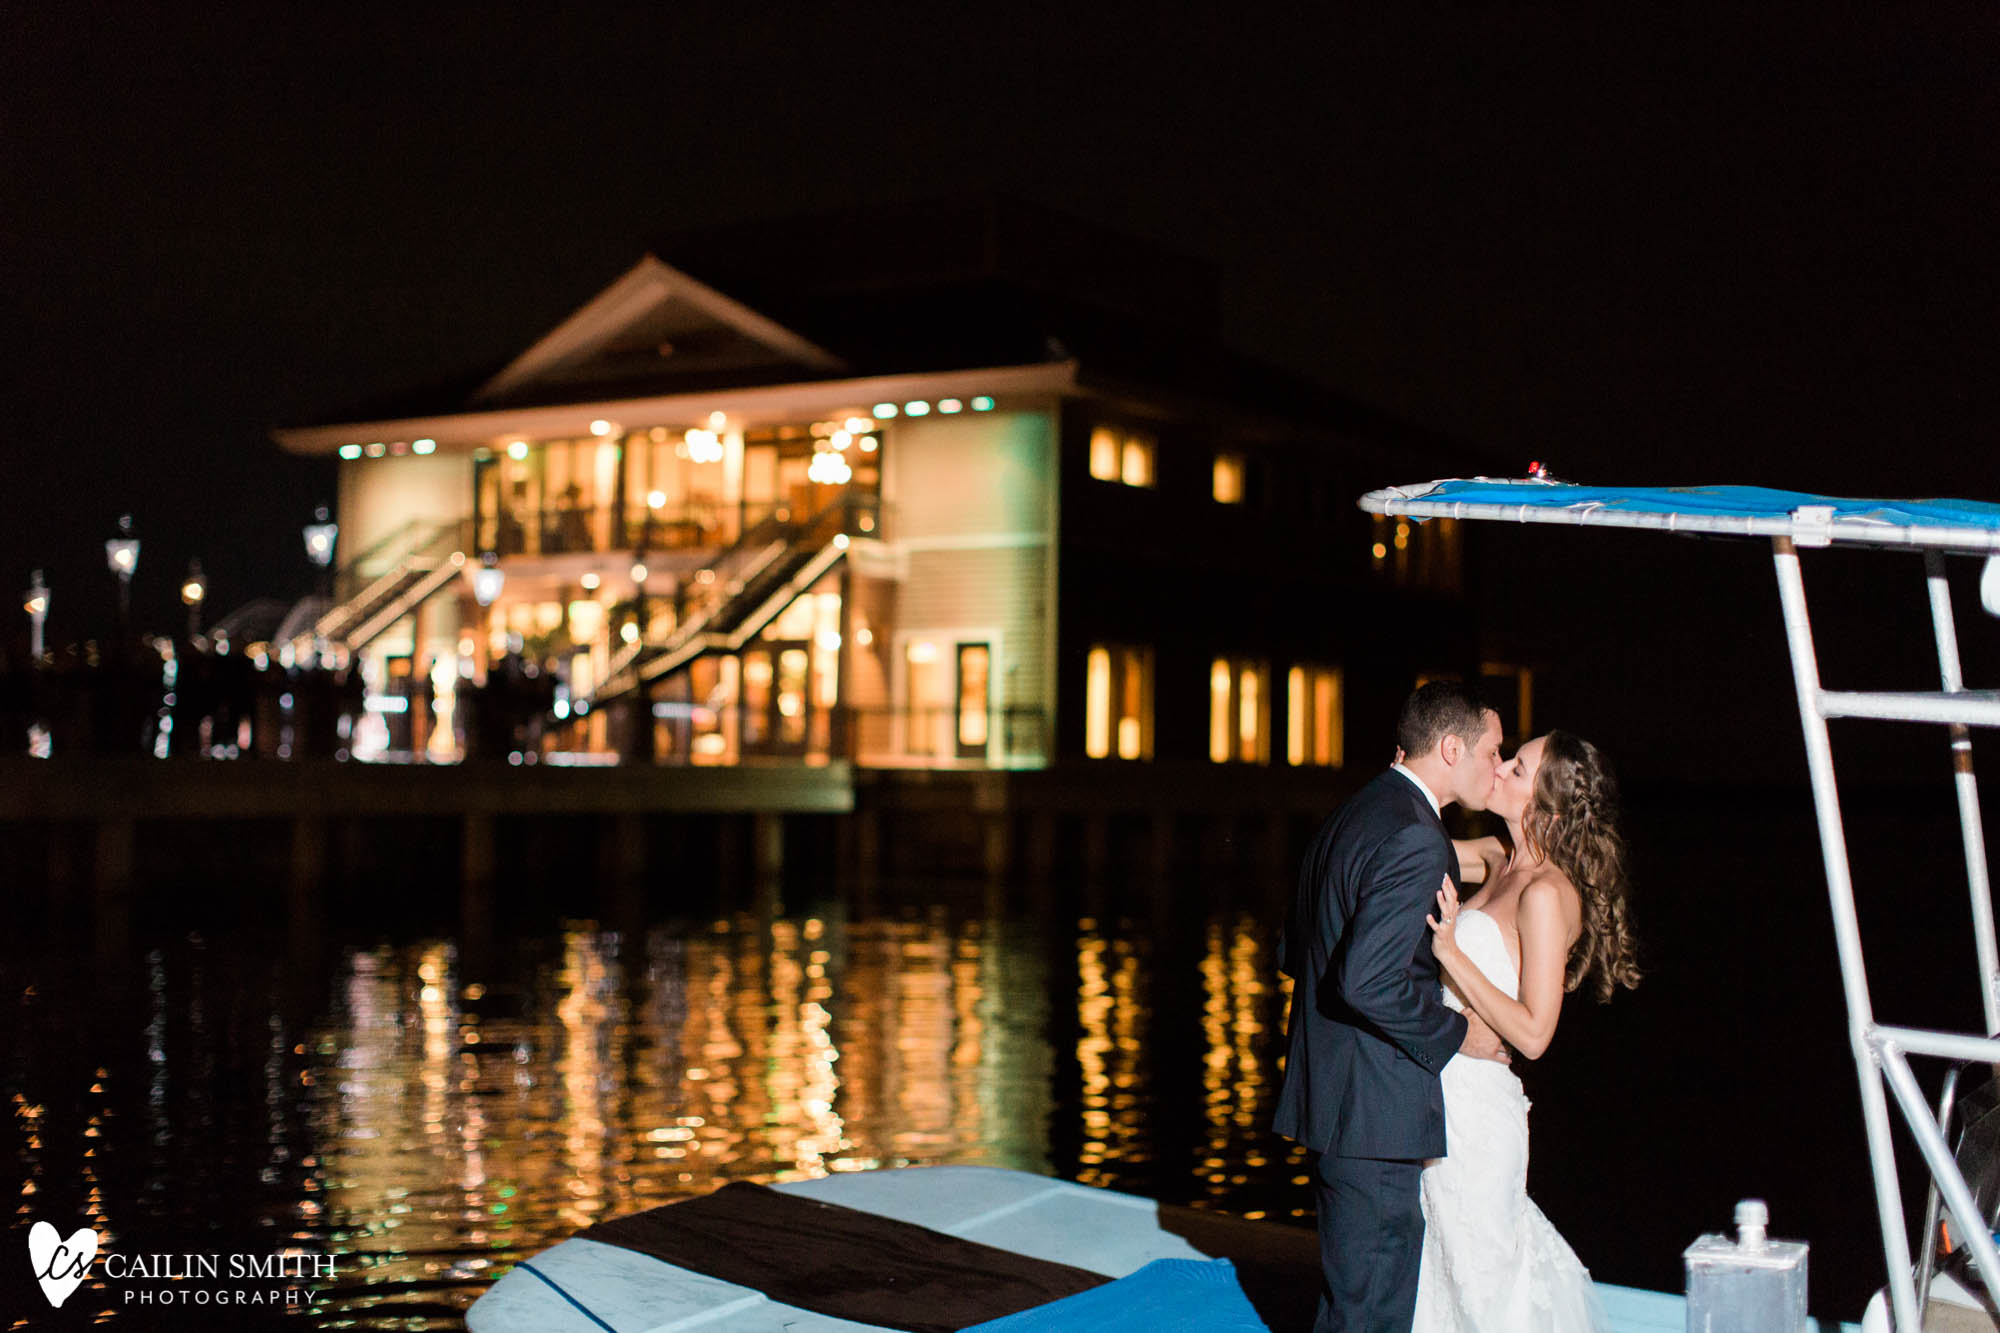 Nicki_Craig_Tavares_Pavilion_On_The_Lake_Wedding_Photography_0101.jpg